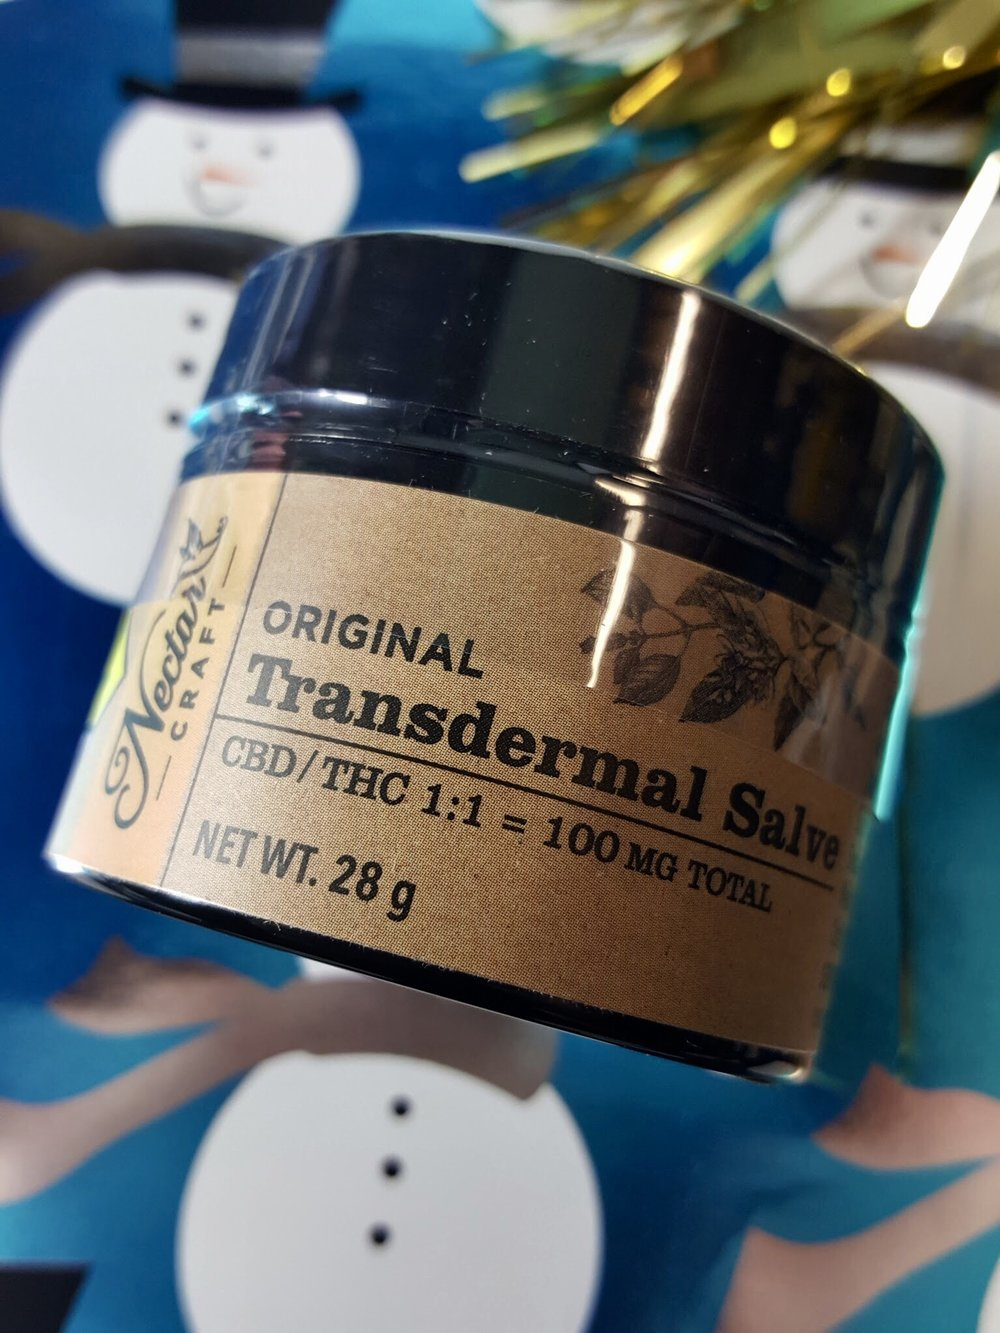 Nectar Craft Transdermal Salve 1:1 CBD:THC Ganja Goddess